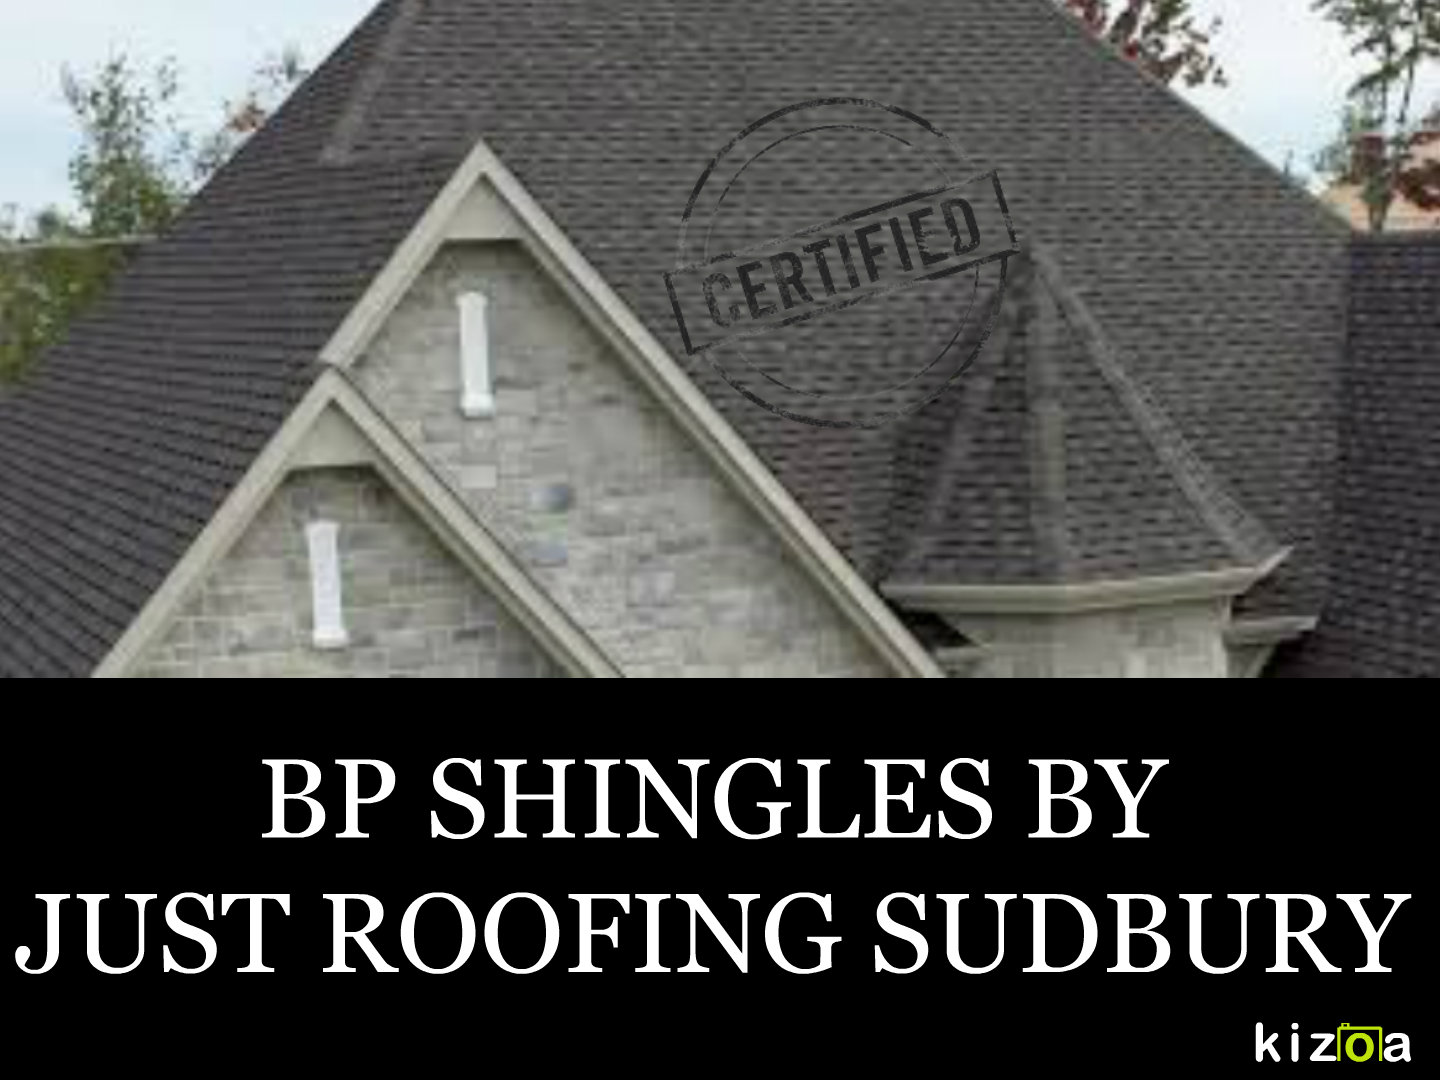 Crc Biltmore Shingles Roofing Services Sudbury Sudbury Roofing For All Your Roofing Needs